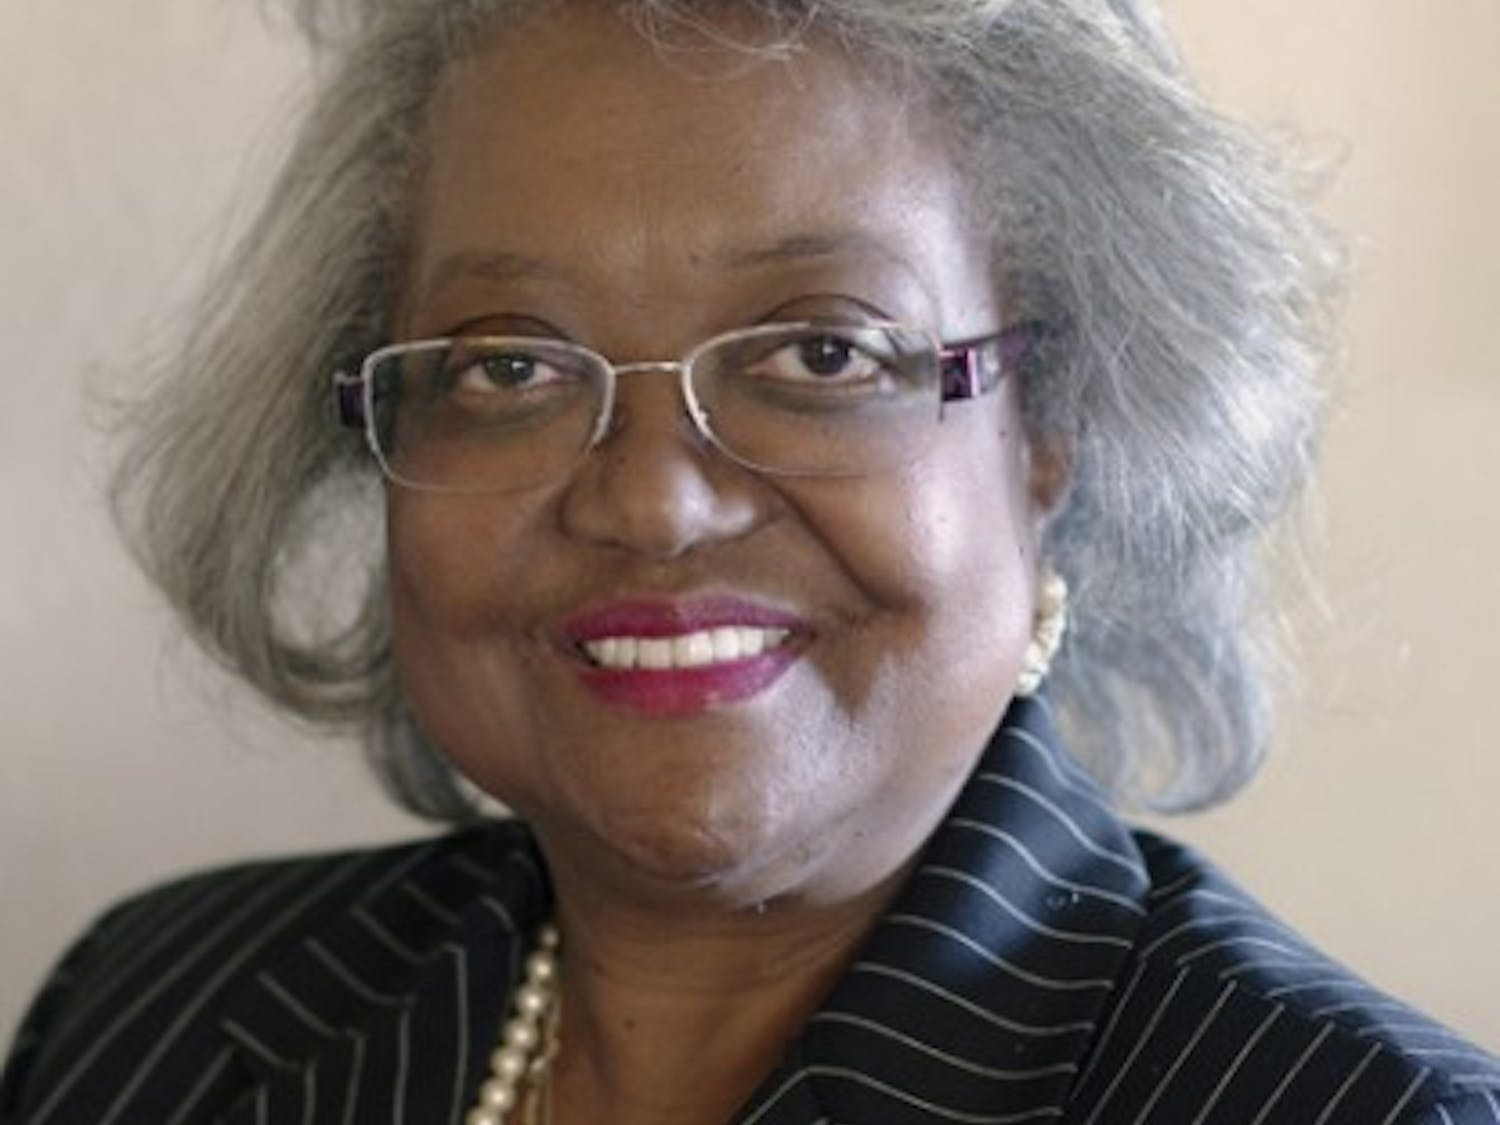 Yvonne Hinson-Rawls, 64, is one of three candidates running for the District 1 seat of the Gainesville City Commission.